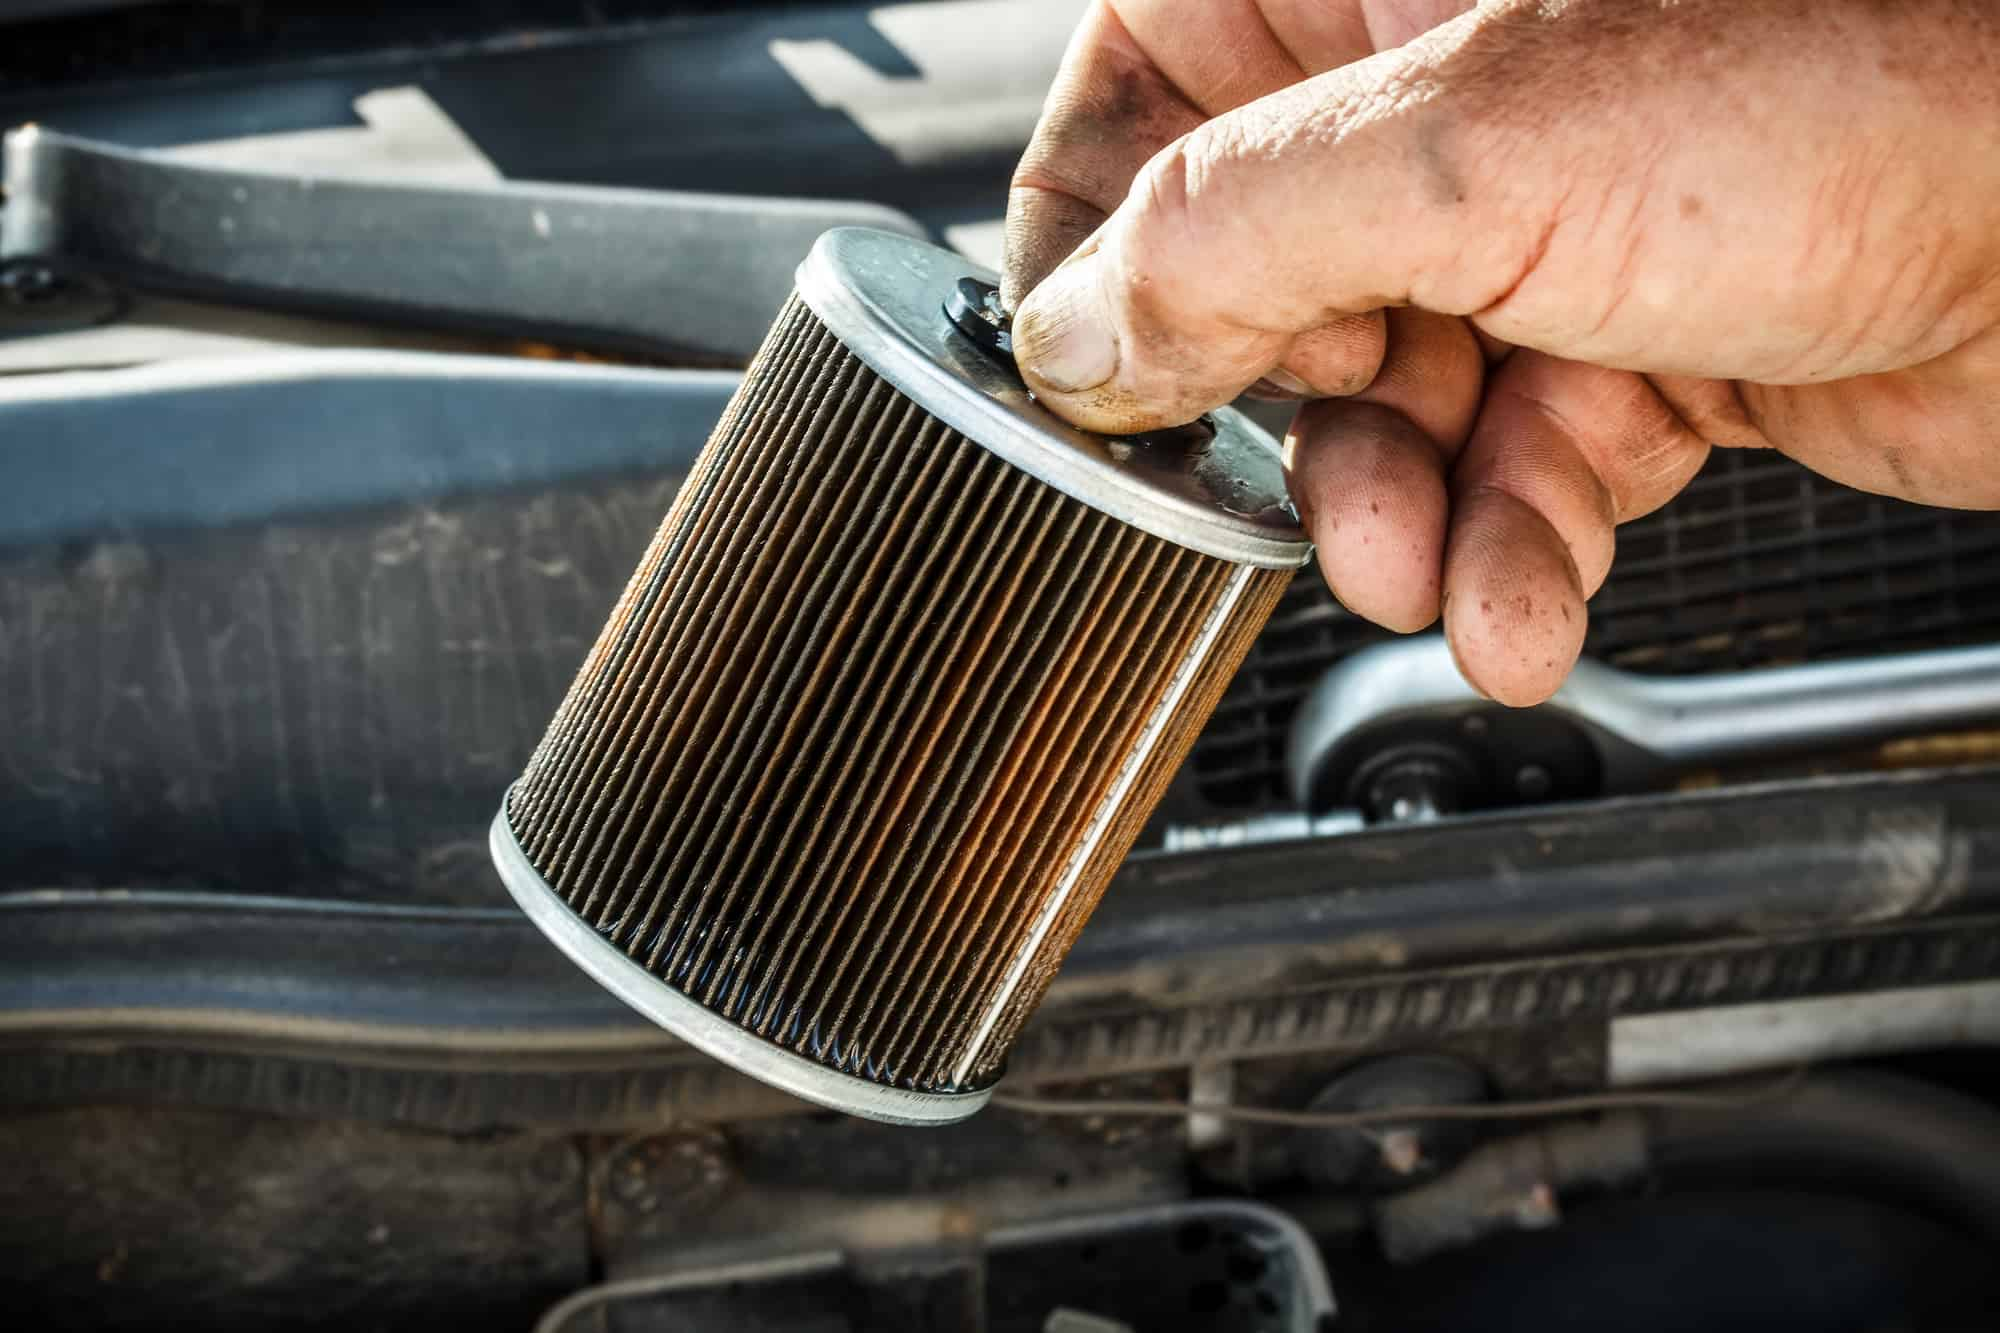 What Are The Symptoms Of A Bad Fuel Filter? - The Motor GuyThe Motor Guy